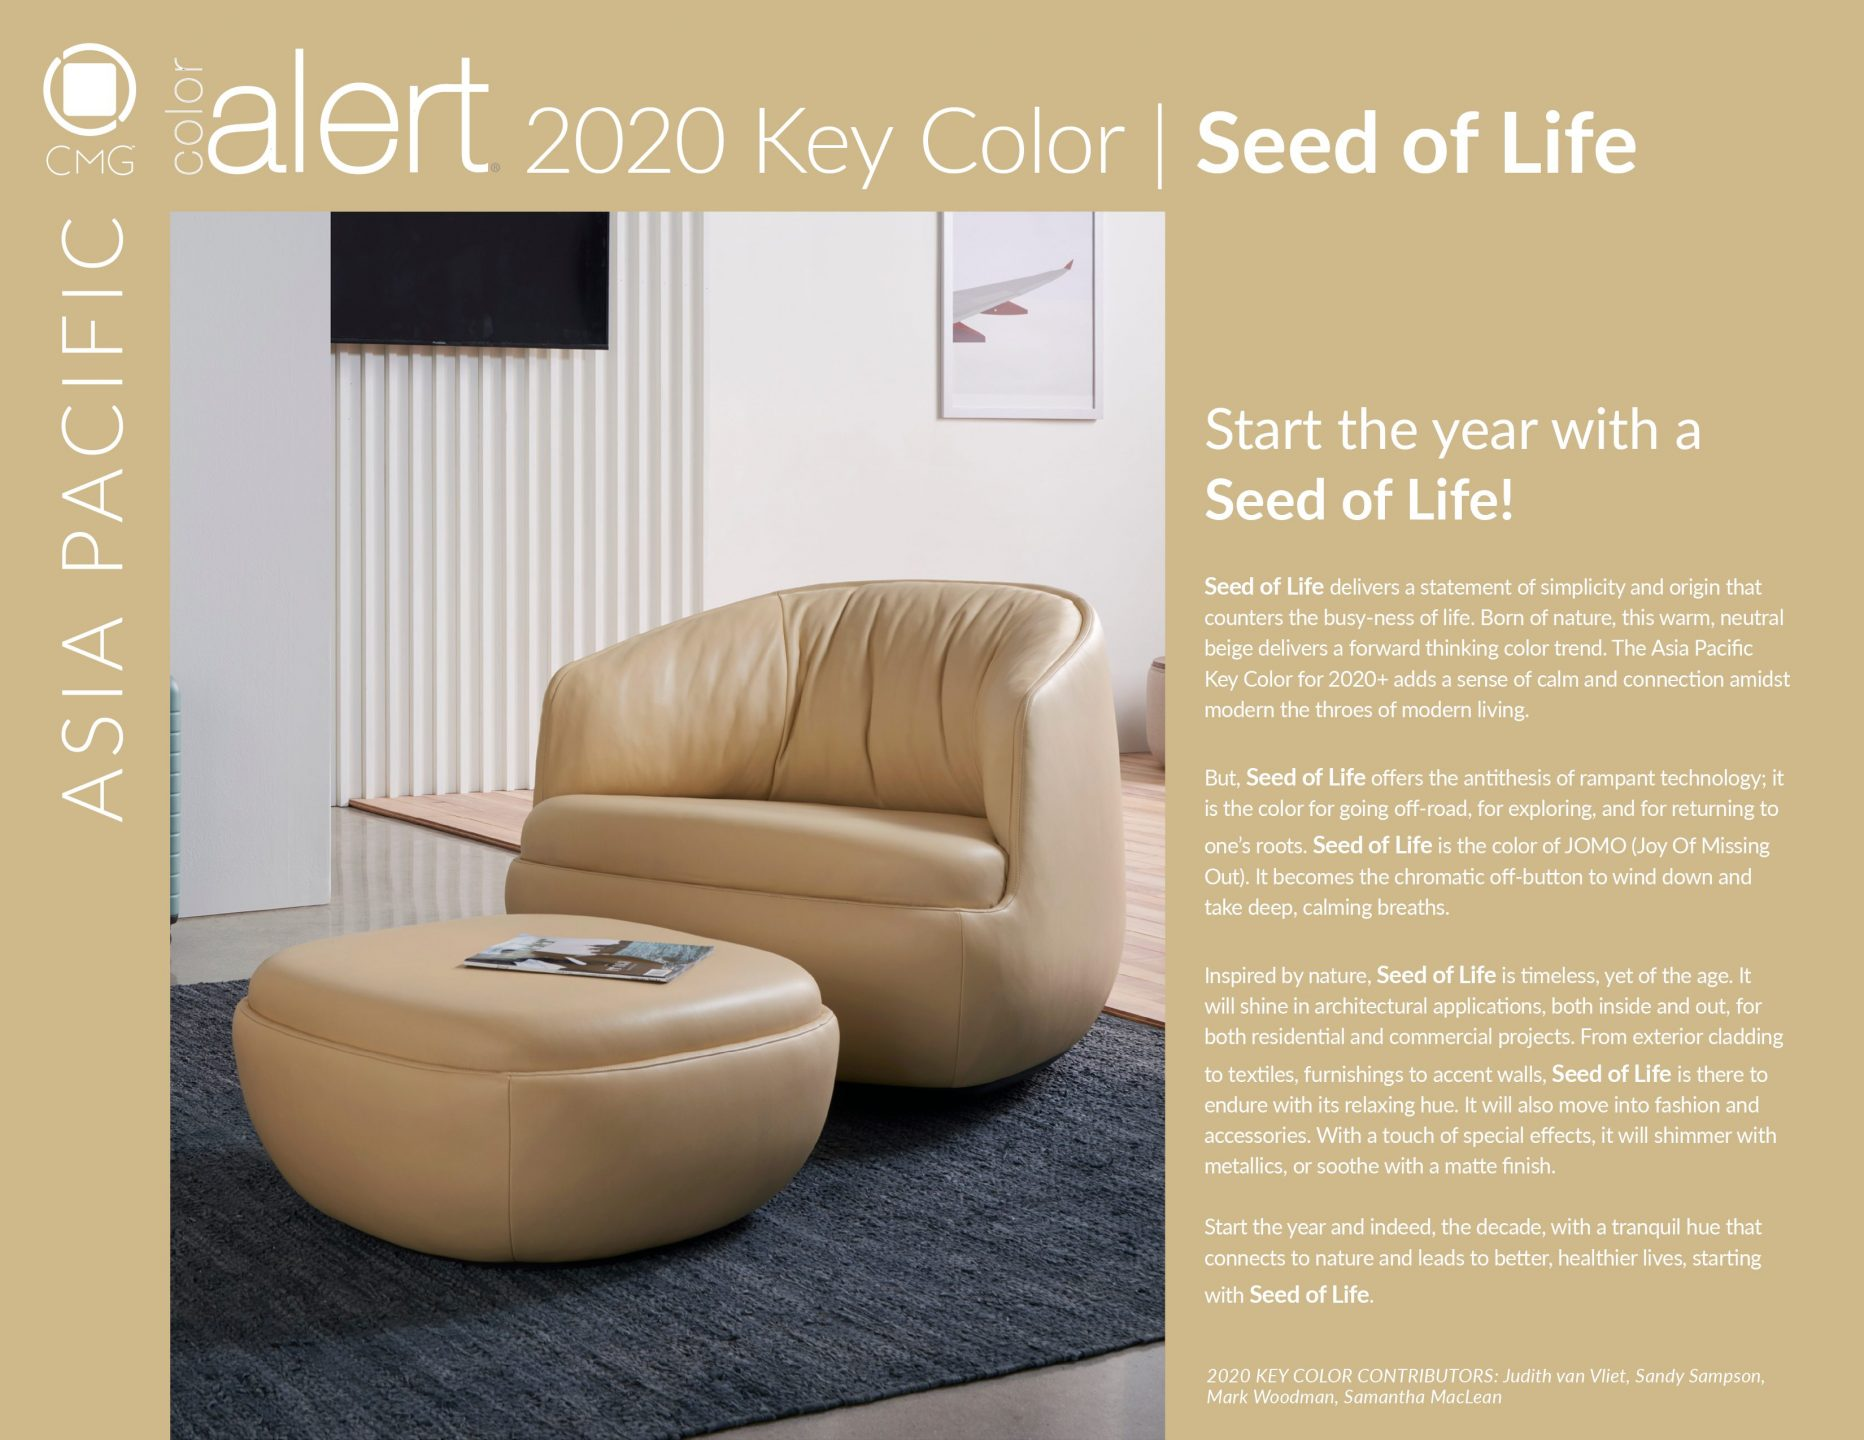 CMG 2020 Key Color Seed of Life